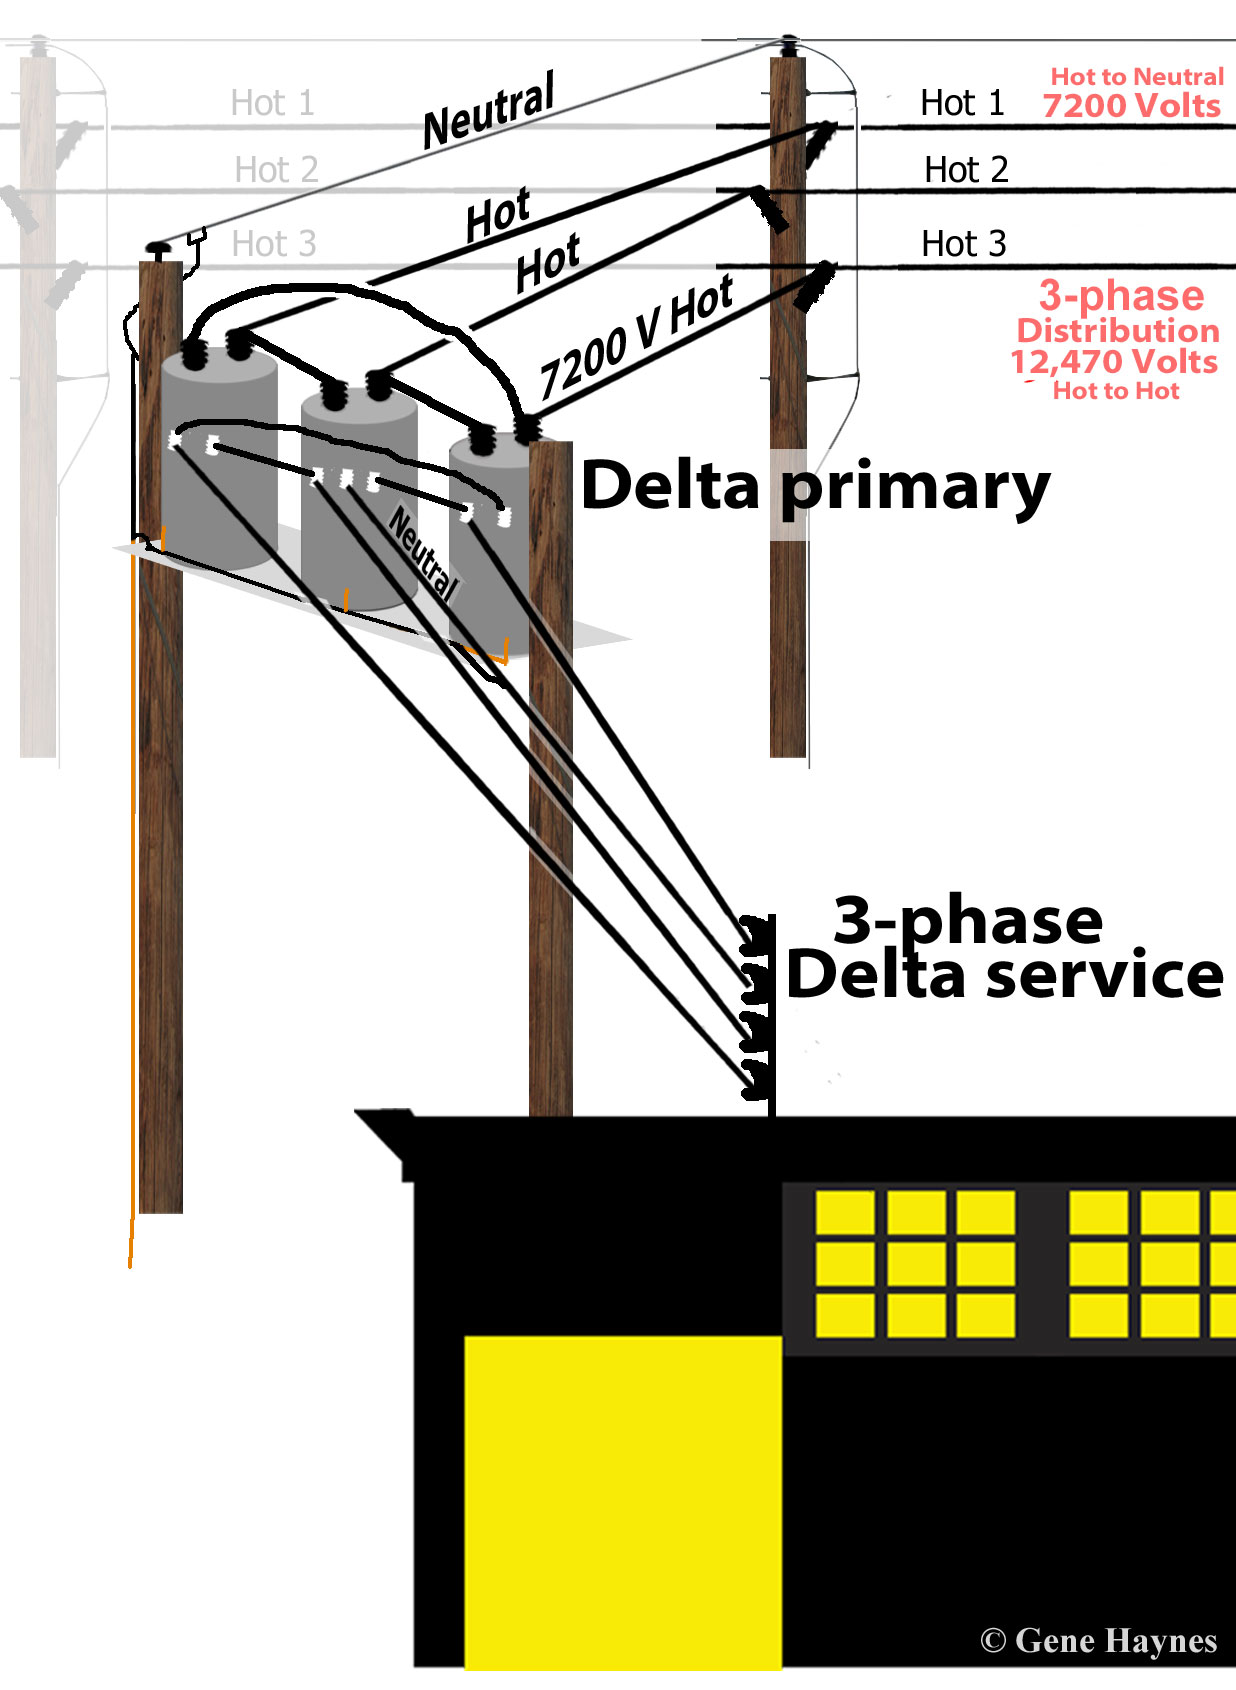 Electricity from plant to distribution transformer to business delta s4l how to wire 3 phase distribution transformer wiring diagram at soozxer.org